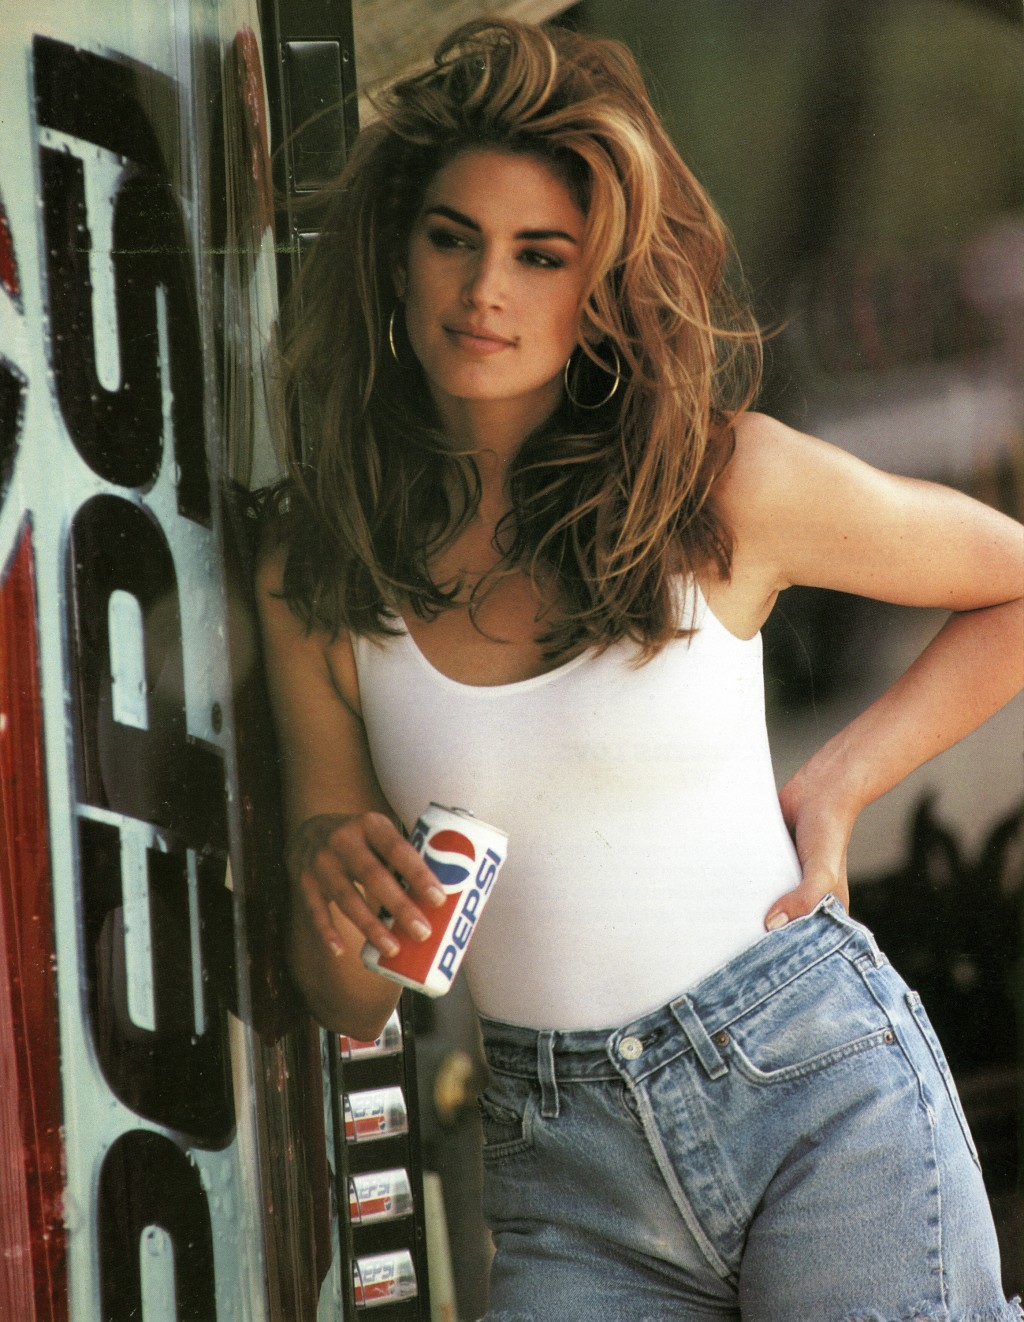 This image released by Pepsi shows actress-model Cindy Crawford in a scene from her 1992 iconic Super Bowl Pepsi commercial. Crawford returns for anot